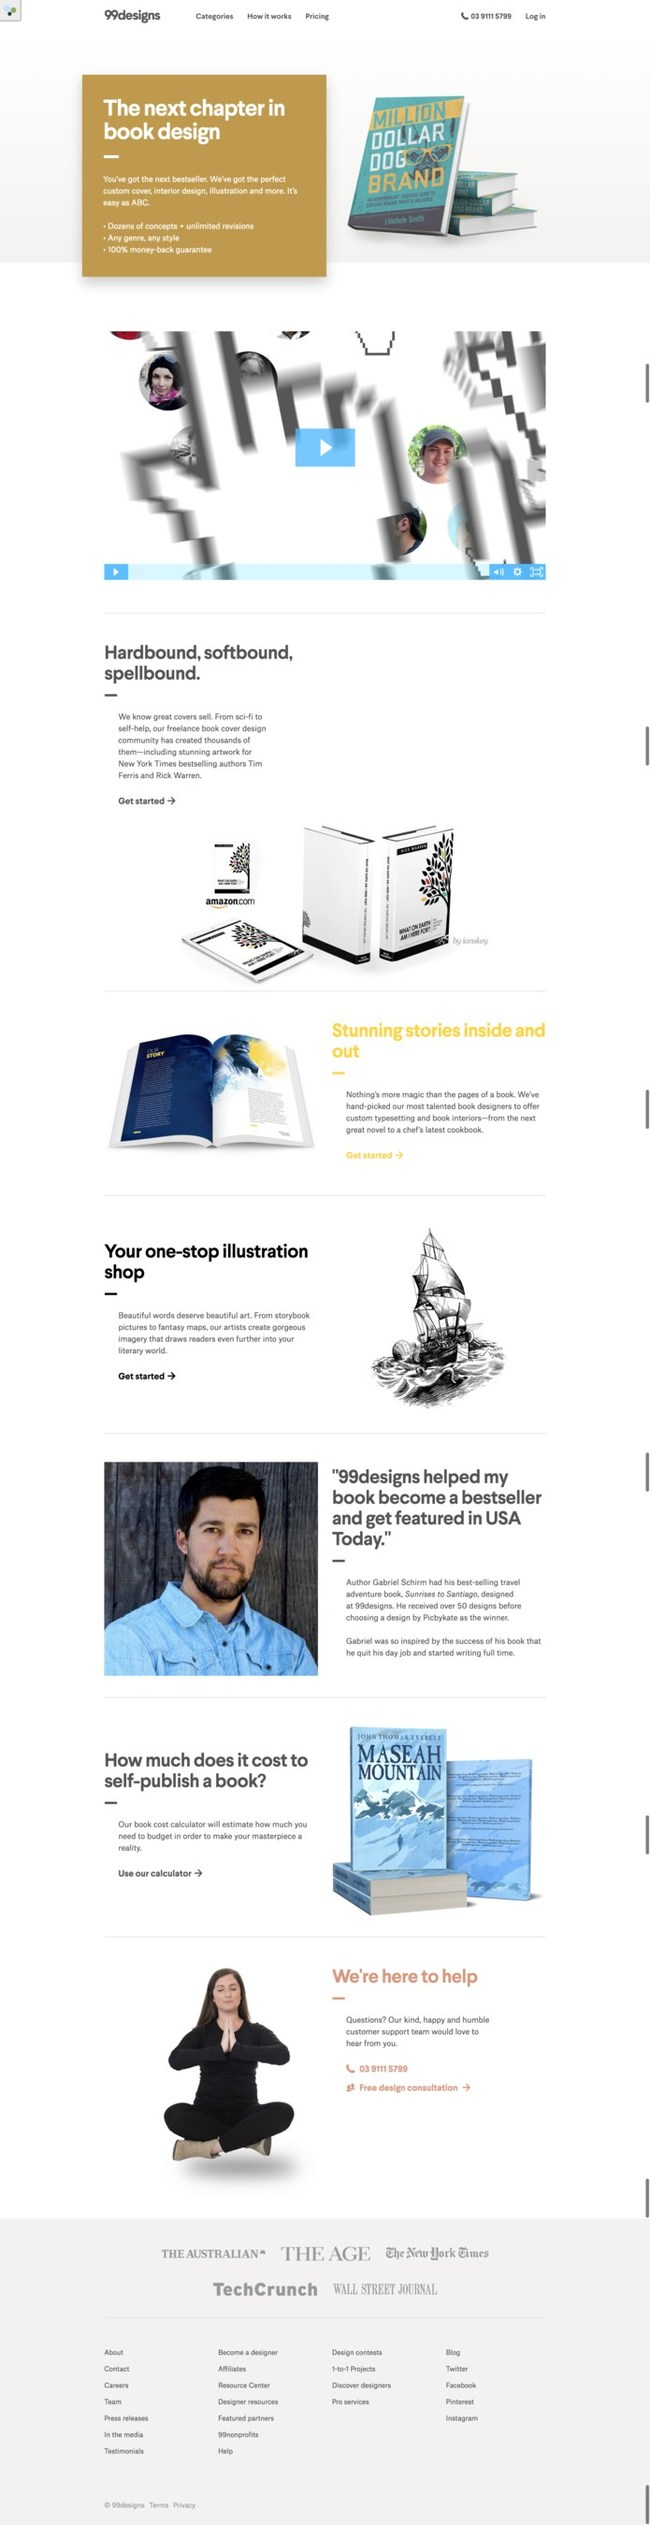 99designs Launches Comprehensive, End-to-End Book Design Solution for Self-Publishers